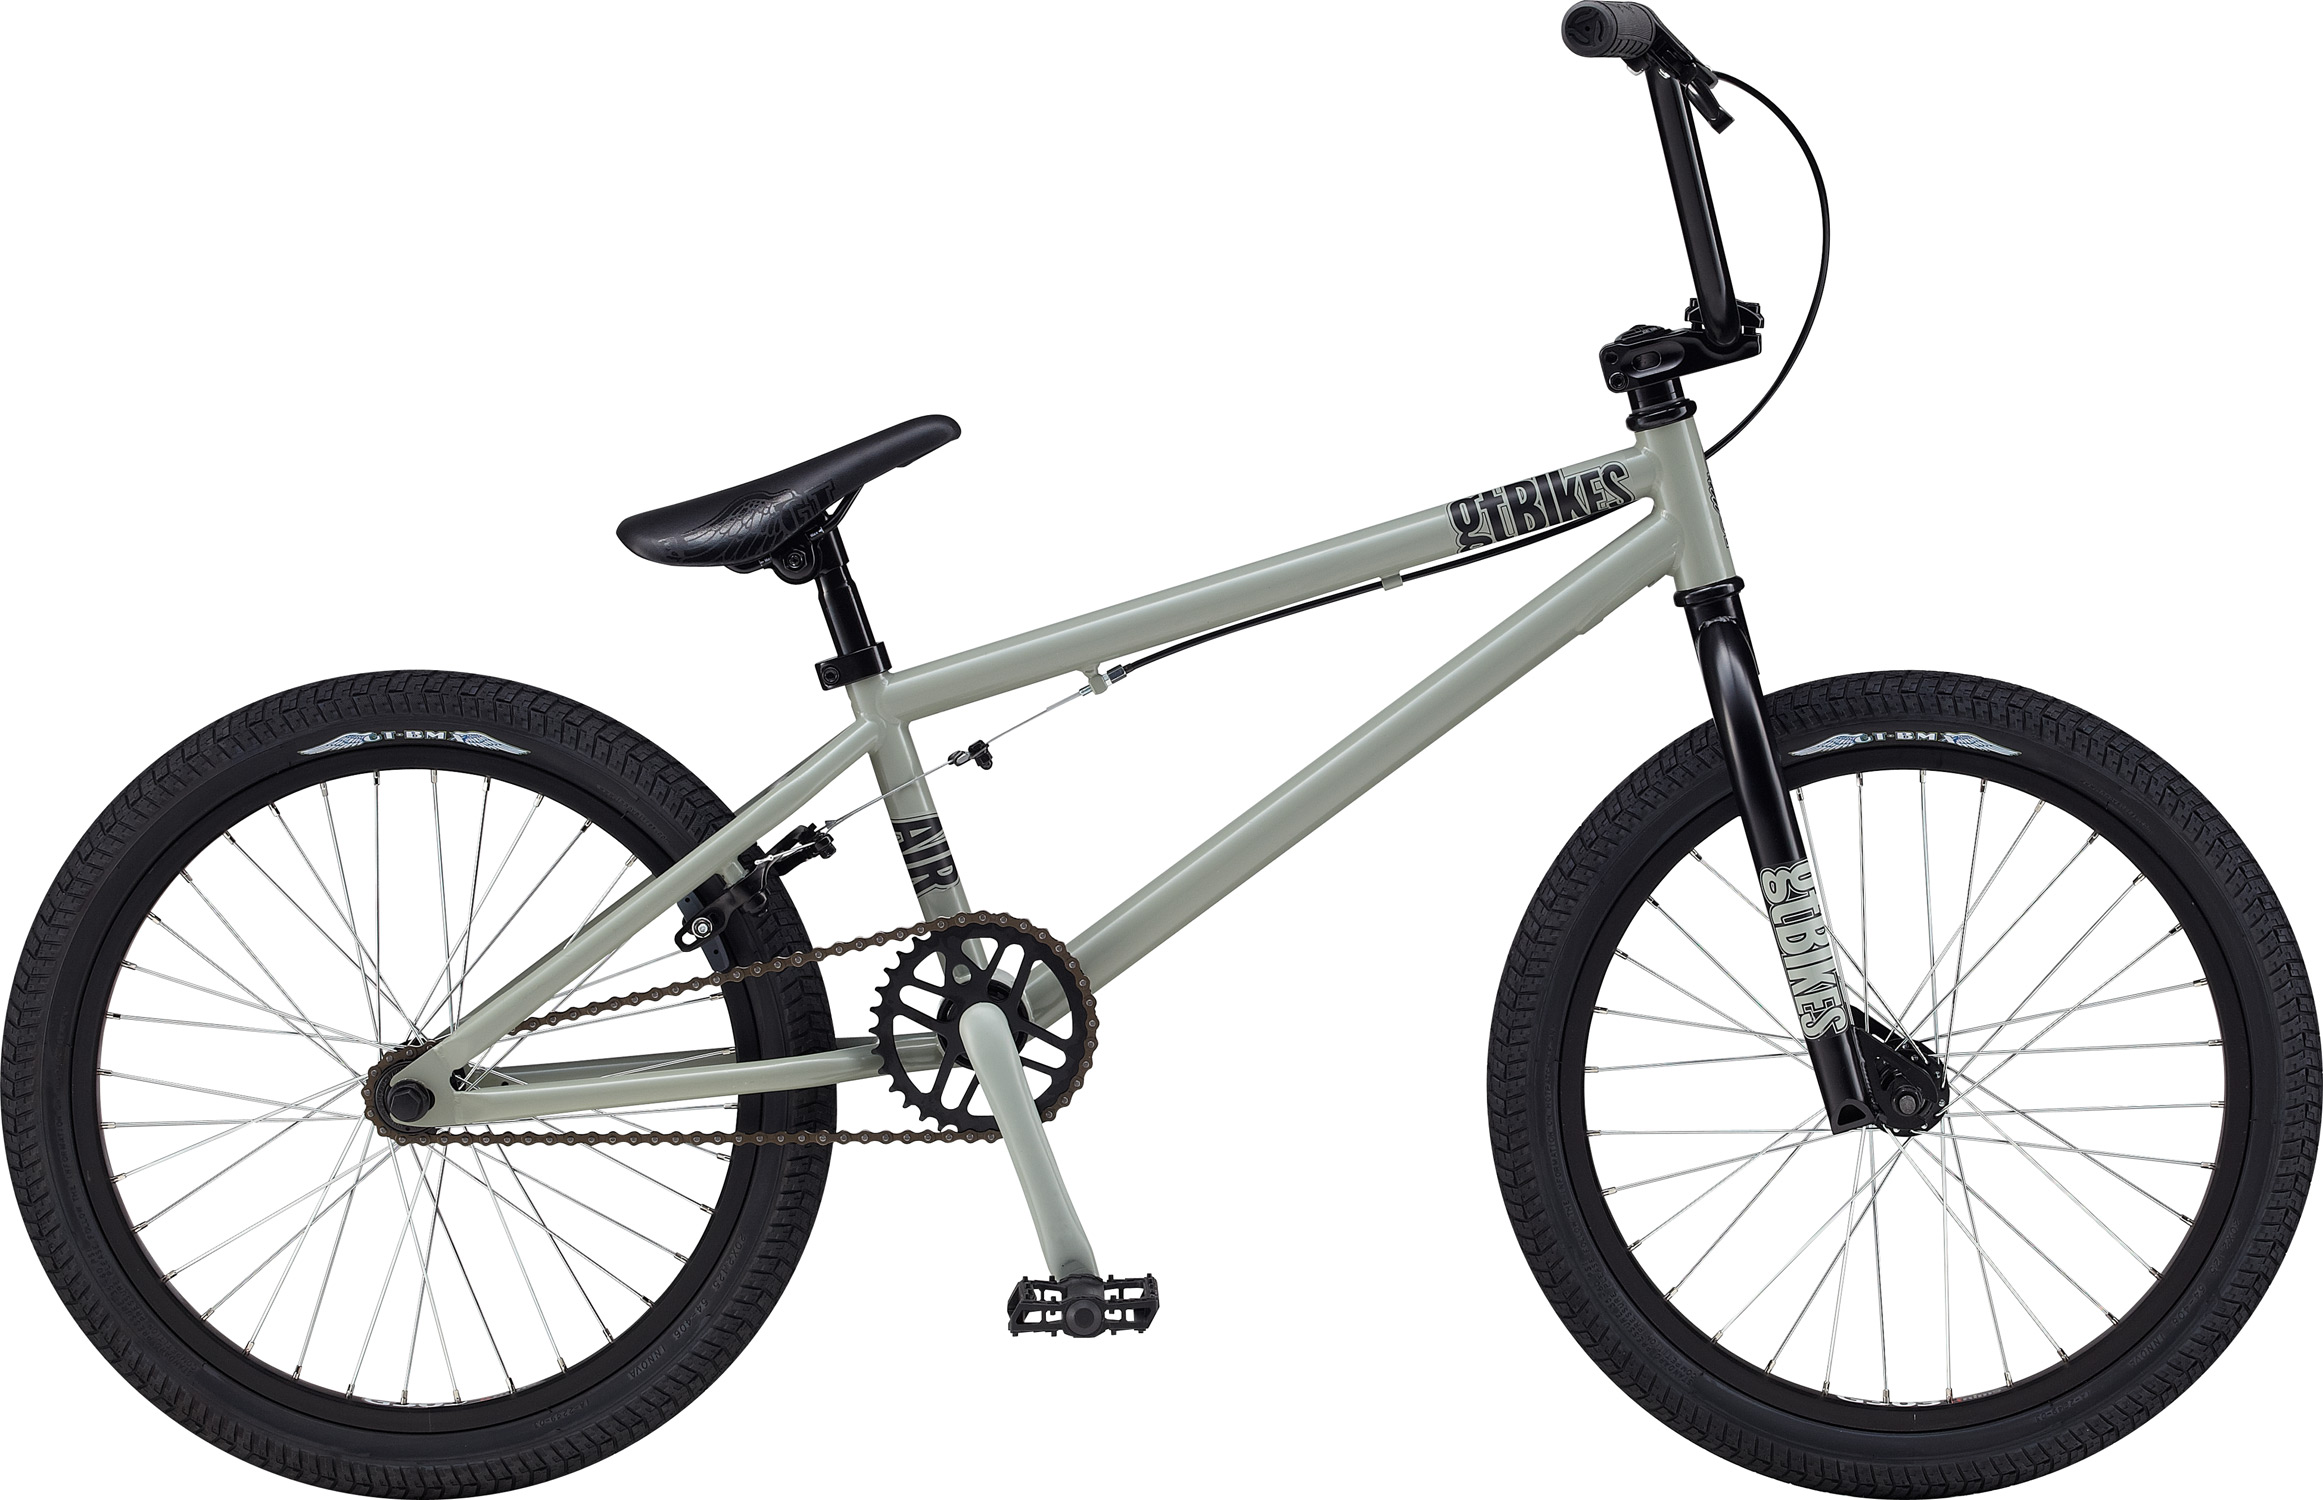 "BMX Key Features of the GT Air BMX Bike 20"": Frame: NEW Straight Gauge, Hi-Ten, Dumped C/S, Triple Triangle™, 14mm Dropouts, S/S Mounted Brake Mounts Front Suspension: GT, Full Hi-Ten, 31.8-28.6 Taper, 3/8, 1 1/8"" Wheels/Hubs: Steel, Freewheel, Loose Ball 3/8""F, 14mmr 32F, 36R Hole Crankset: GT One Piece, 165mm 33T Brakes: C-Star U-Brake - $199.99"